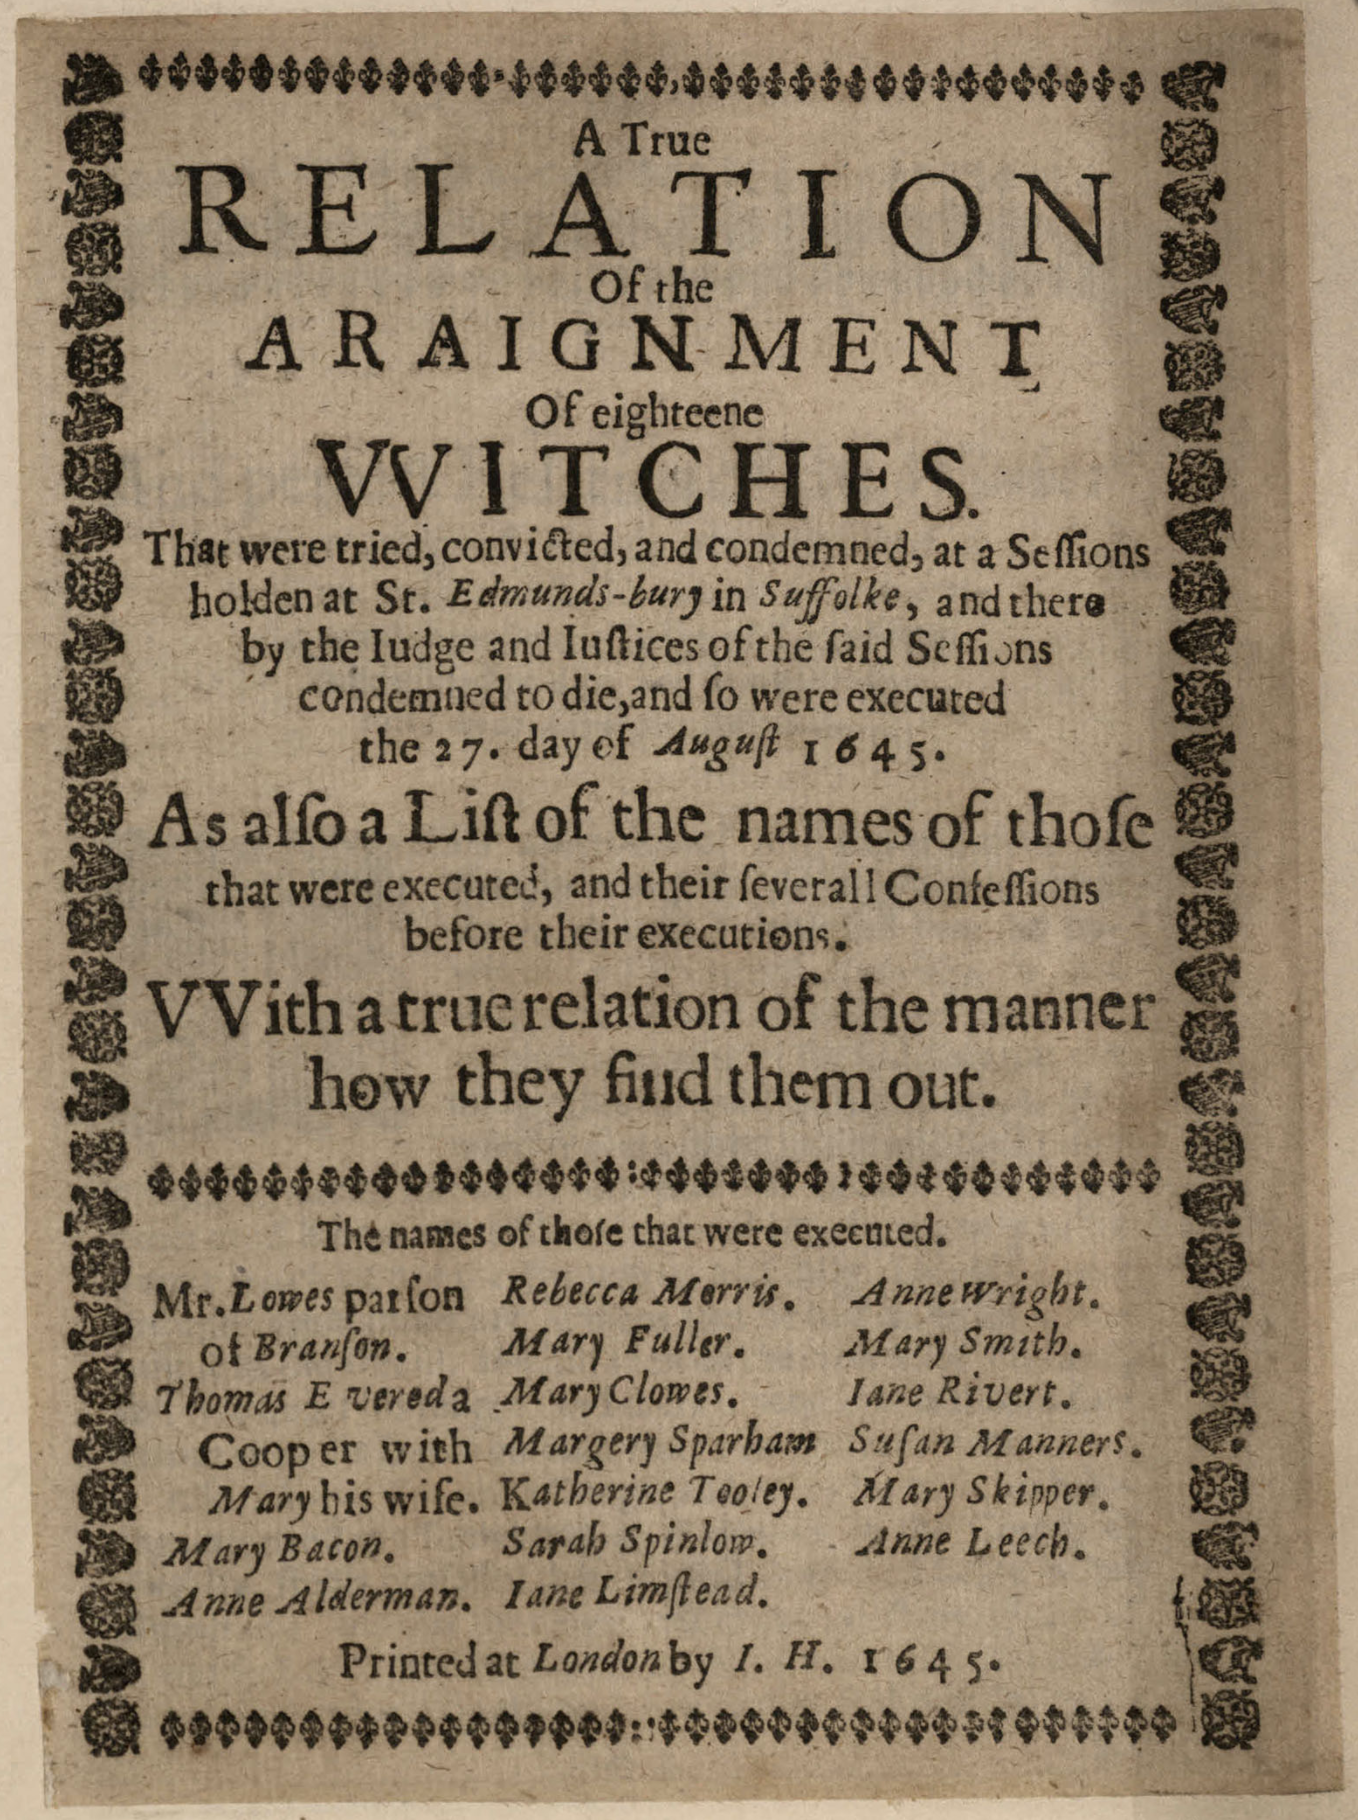 The Largest Single Witch Trial in England 1645